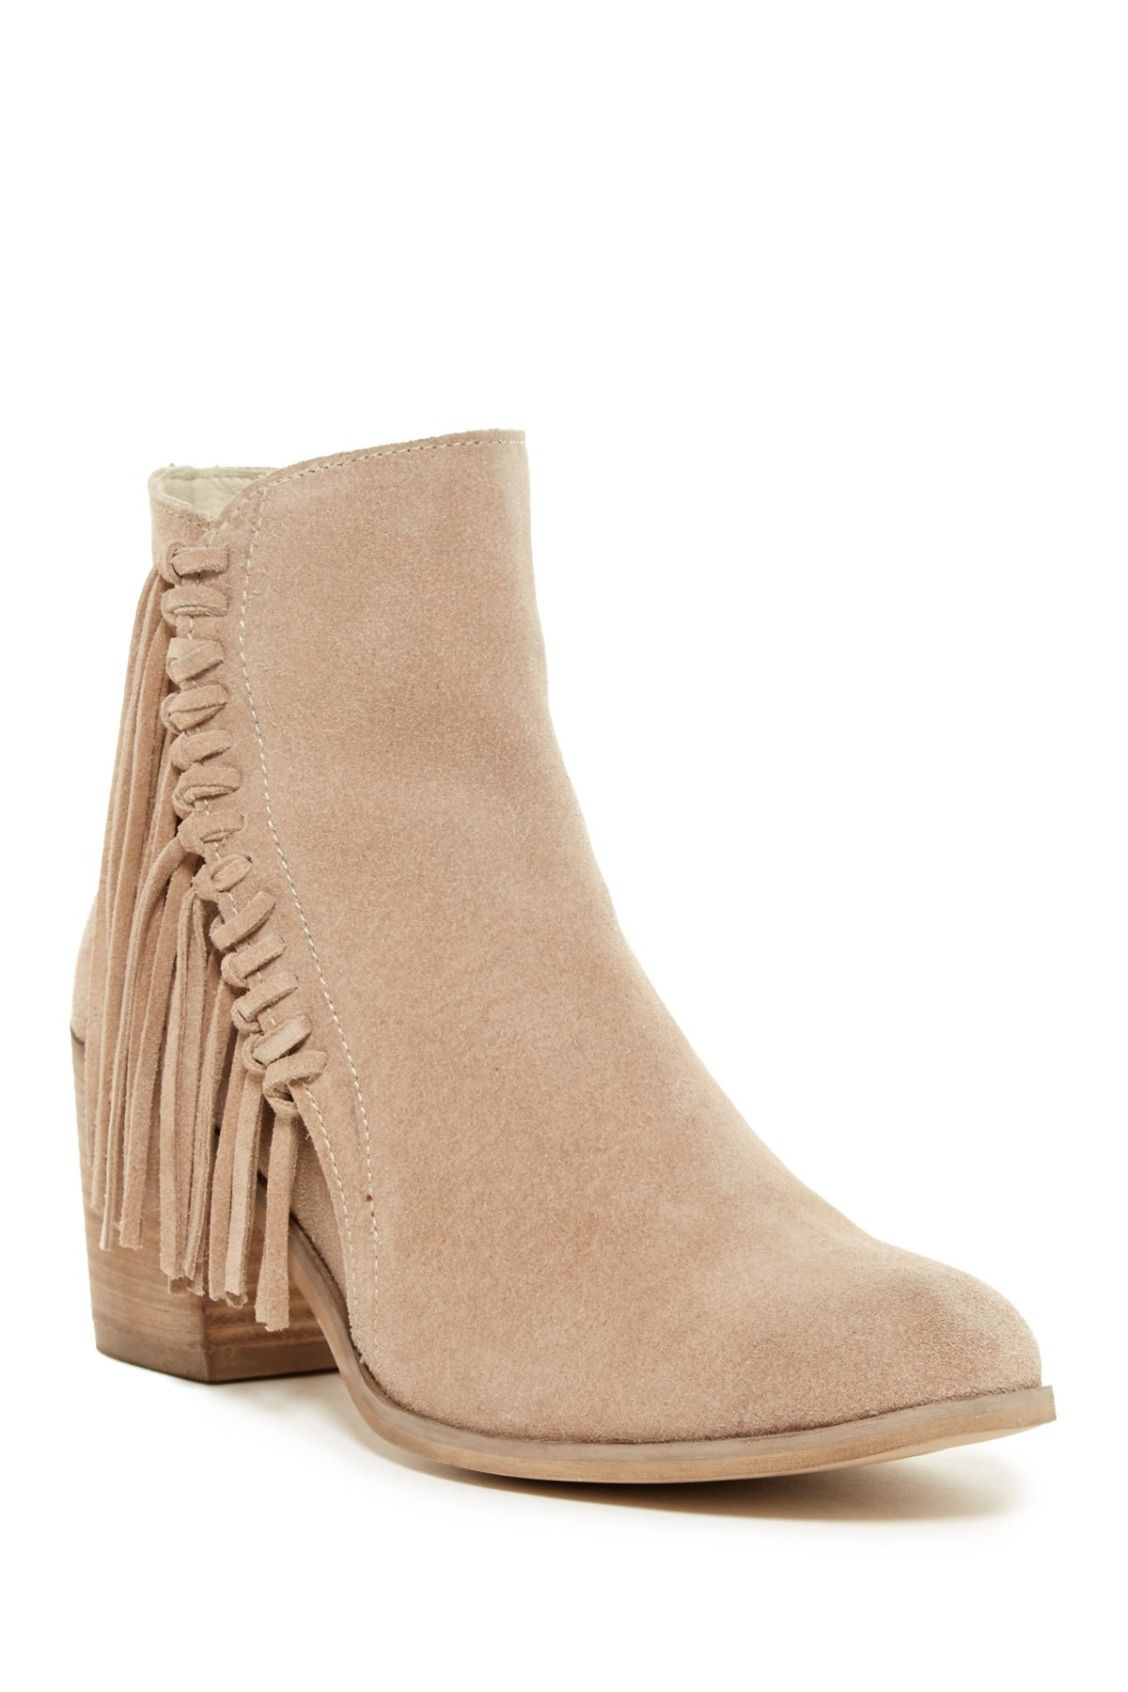 1953b3348a6 Love! Kenneth Cole Reaction Rotini Fringe Ankle Boots | Shoes for ...